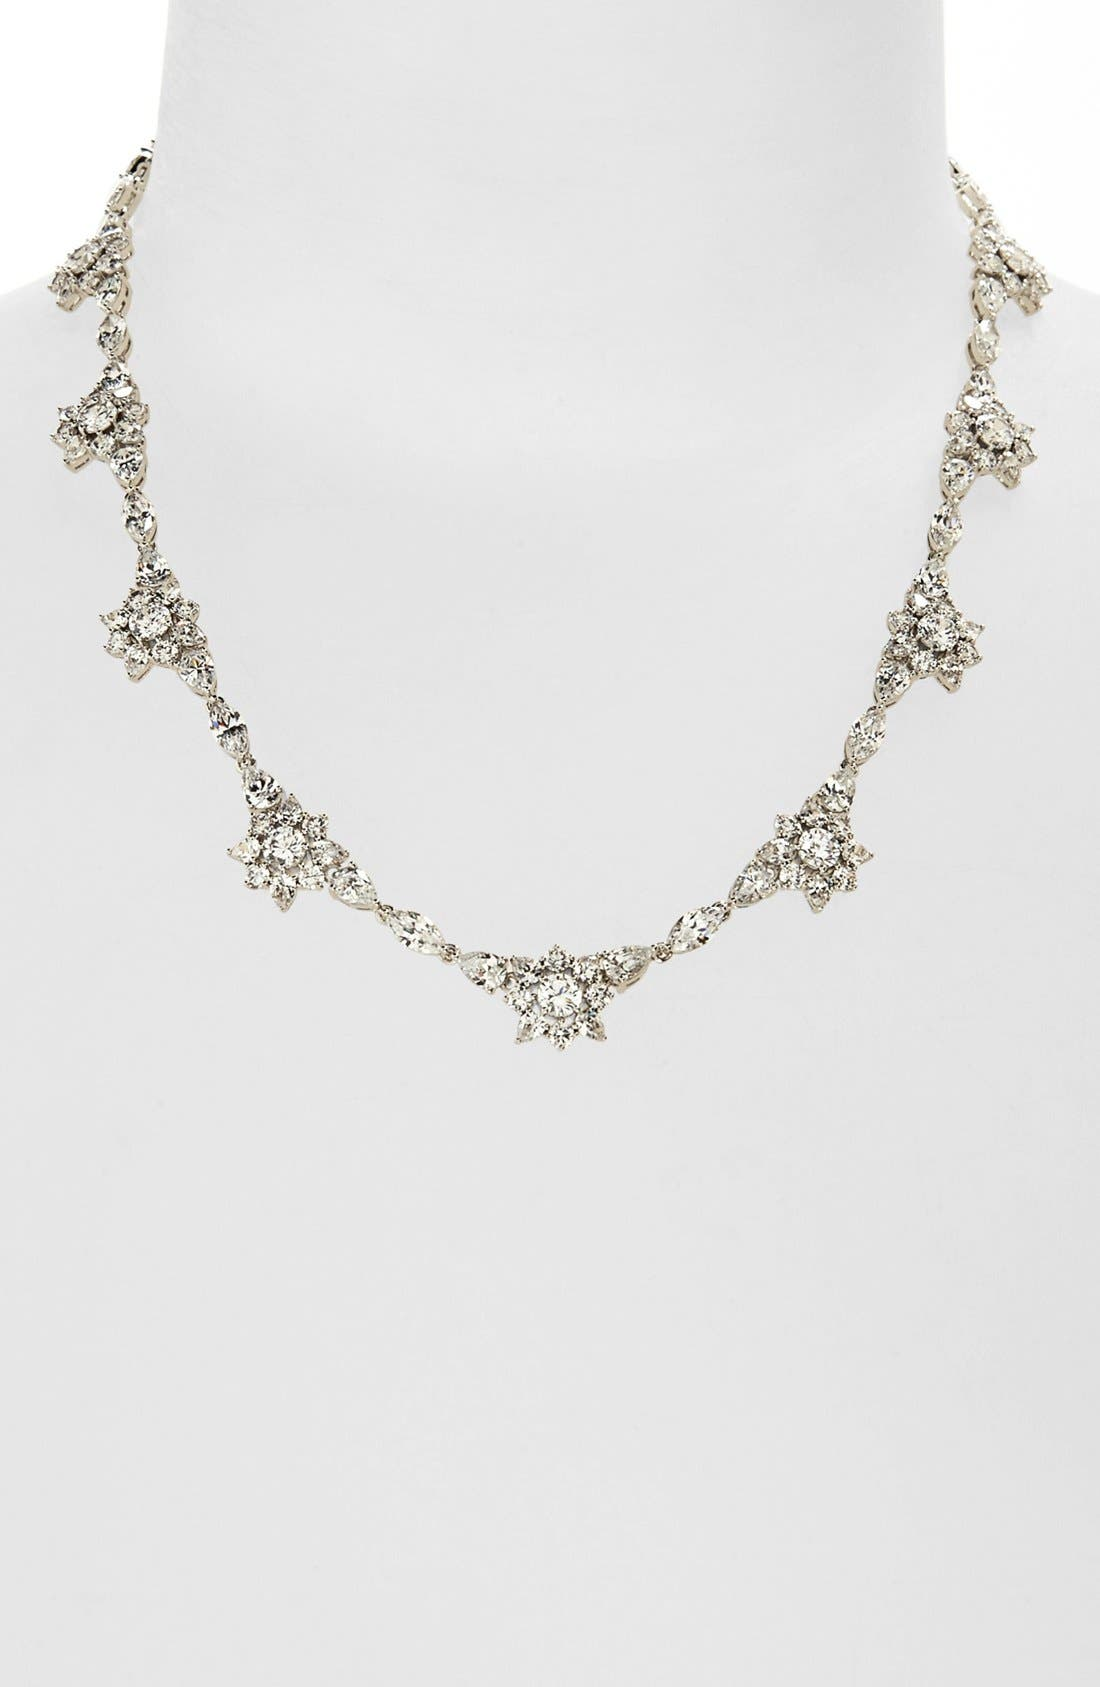 Alternate Image 1 Selected - Nadri 'Flores' All-Around Necklace